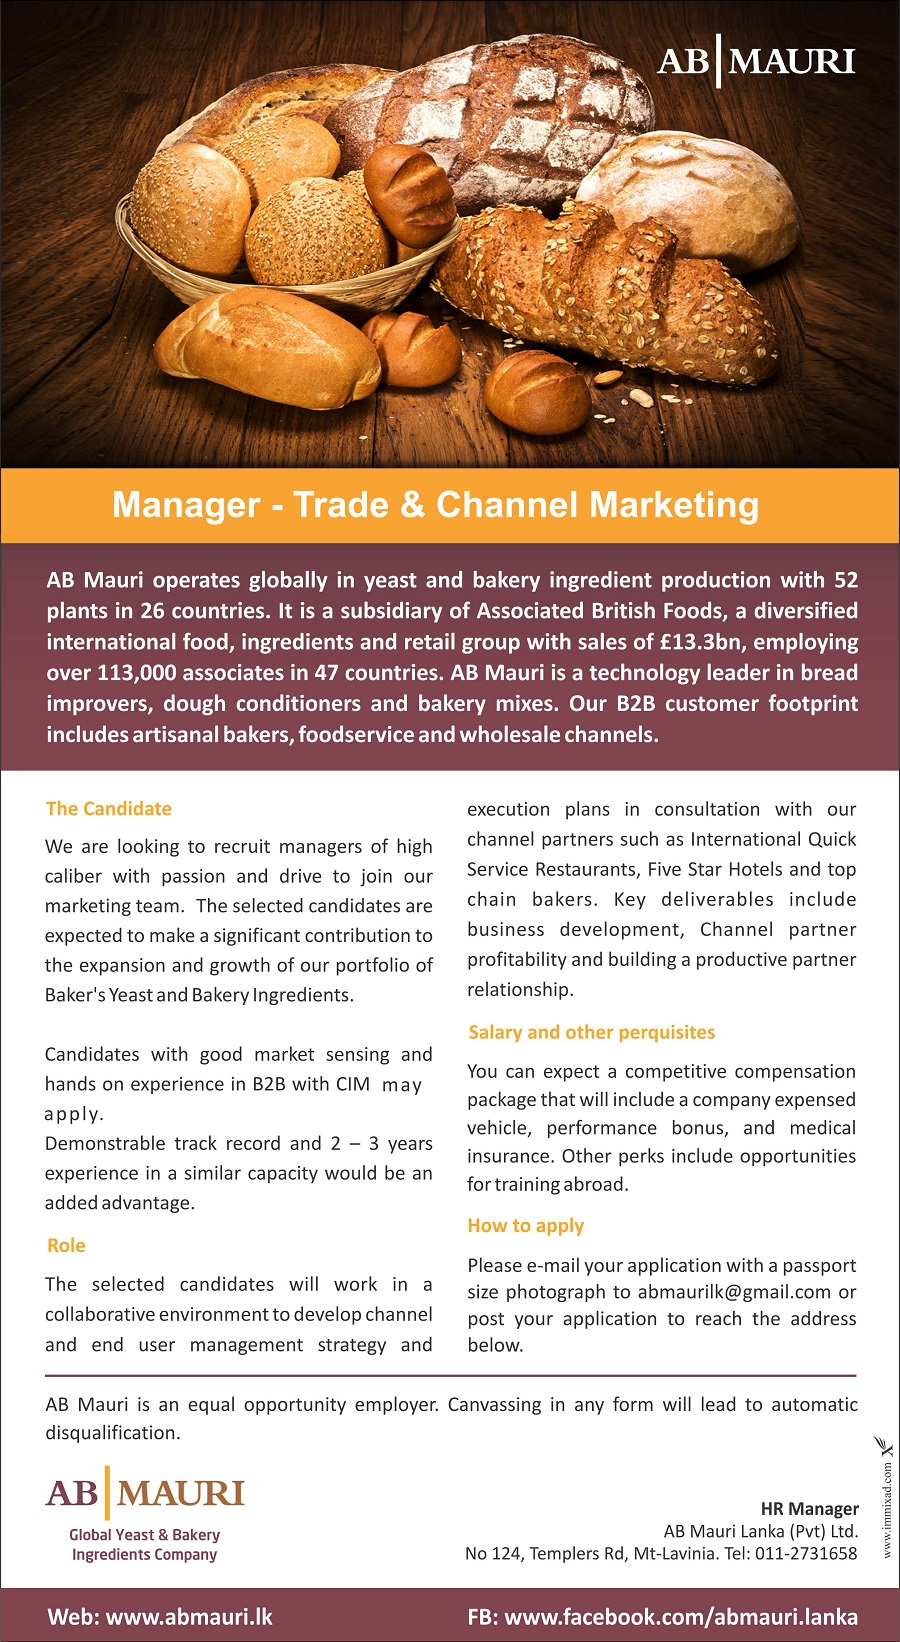 Manager Trade & Channel Marketing